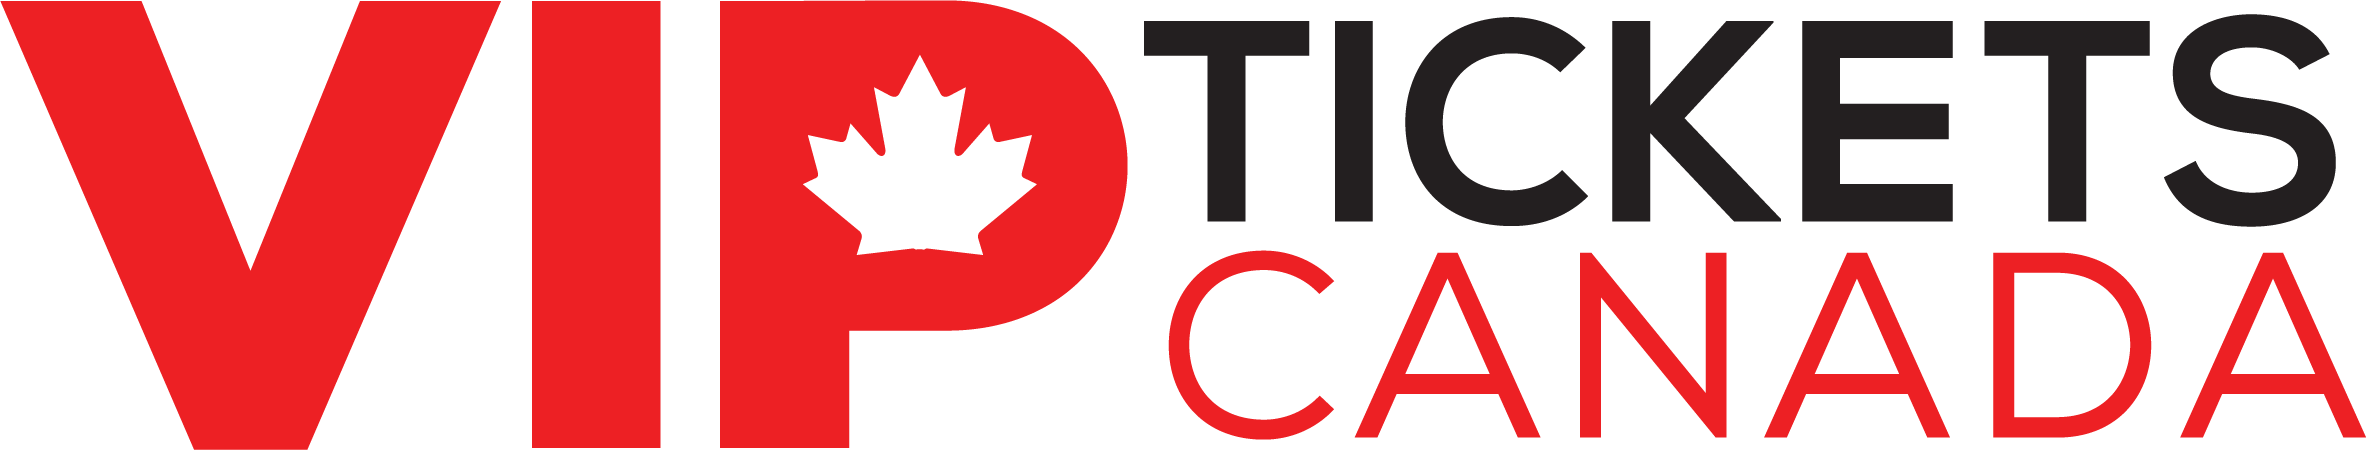 VIP Tickets Canada Coupon Code